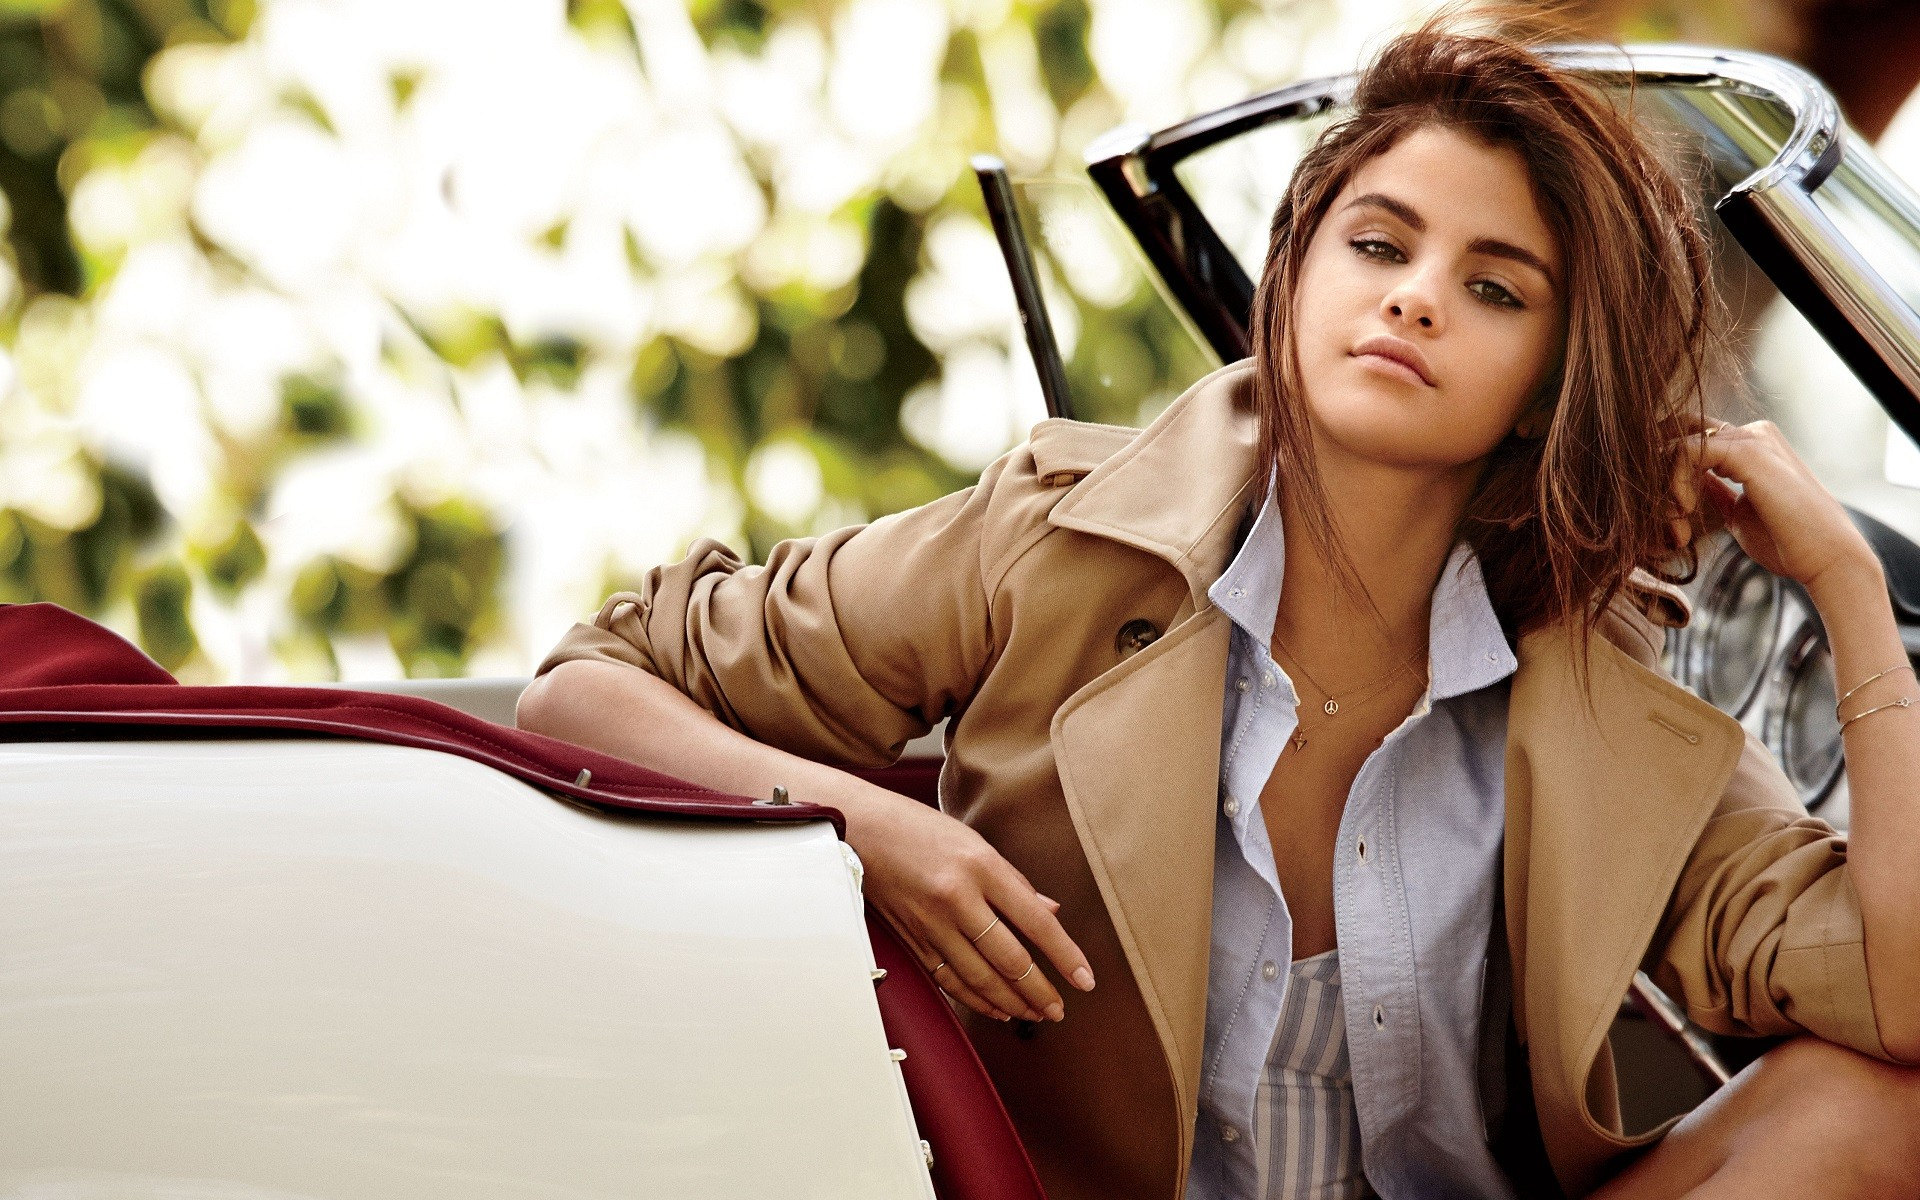 selena gomez with cars, hd celebrities, 4k wallpapers, images